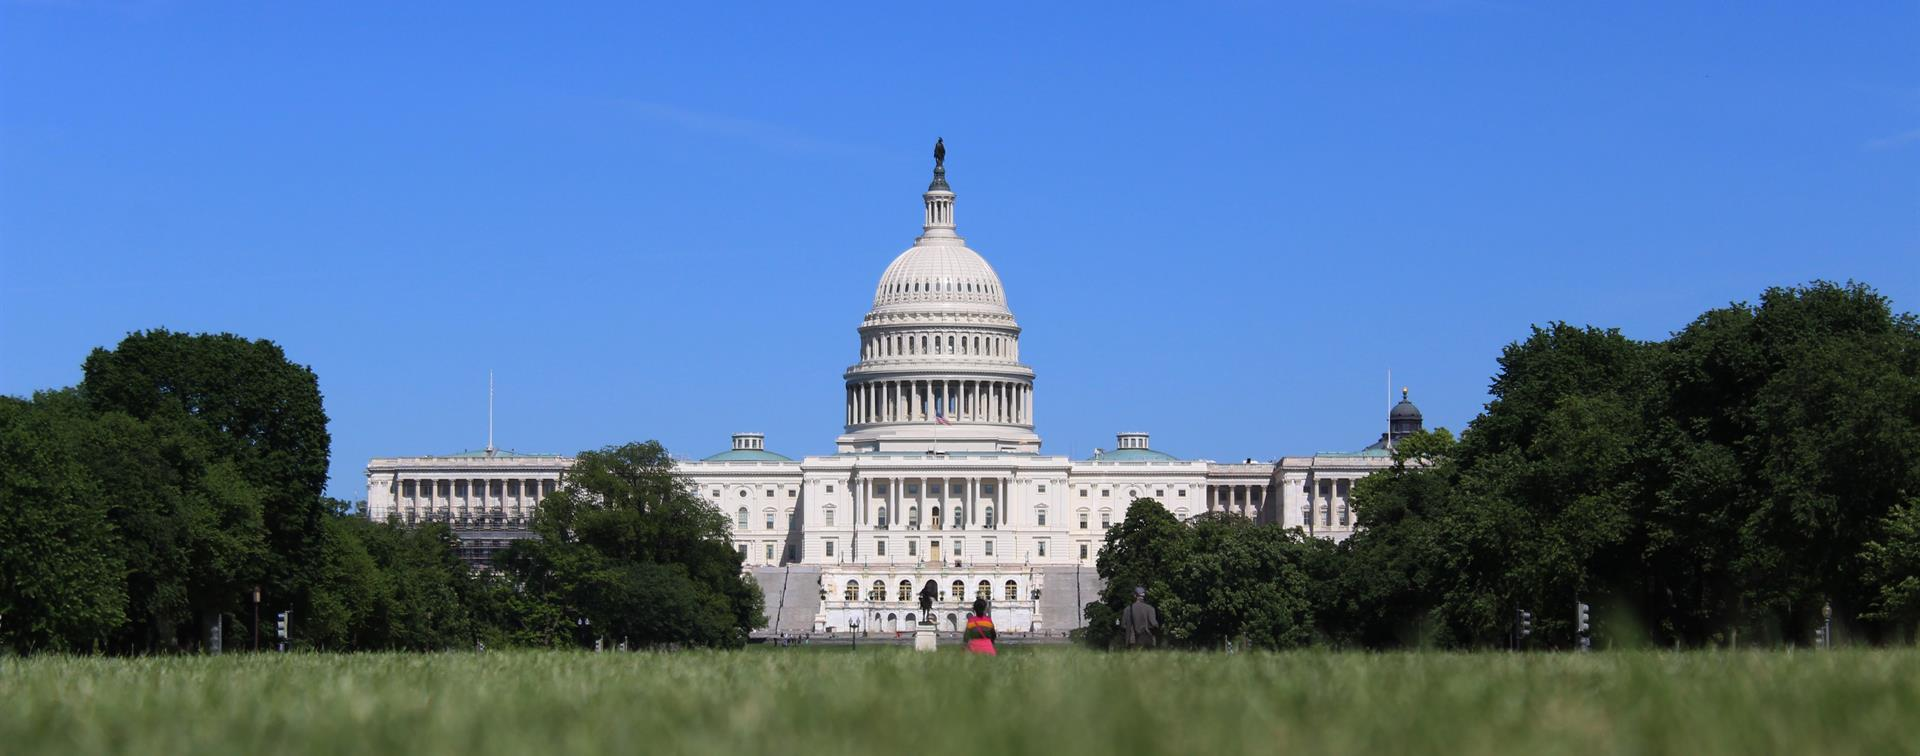 A picture of the United States Capitol Building in Washington, DC